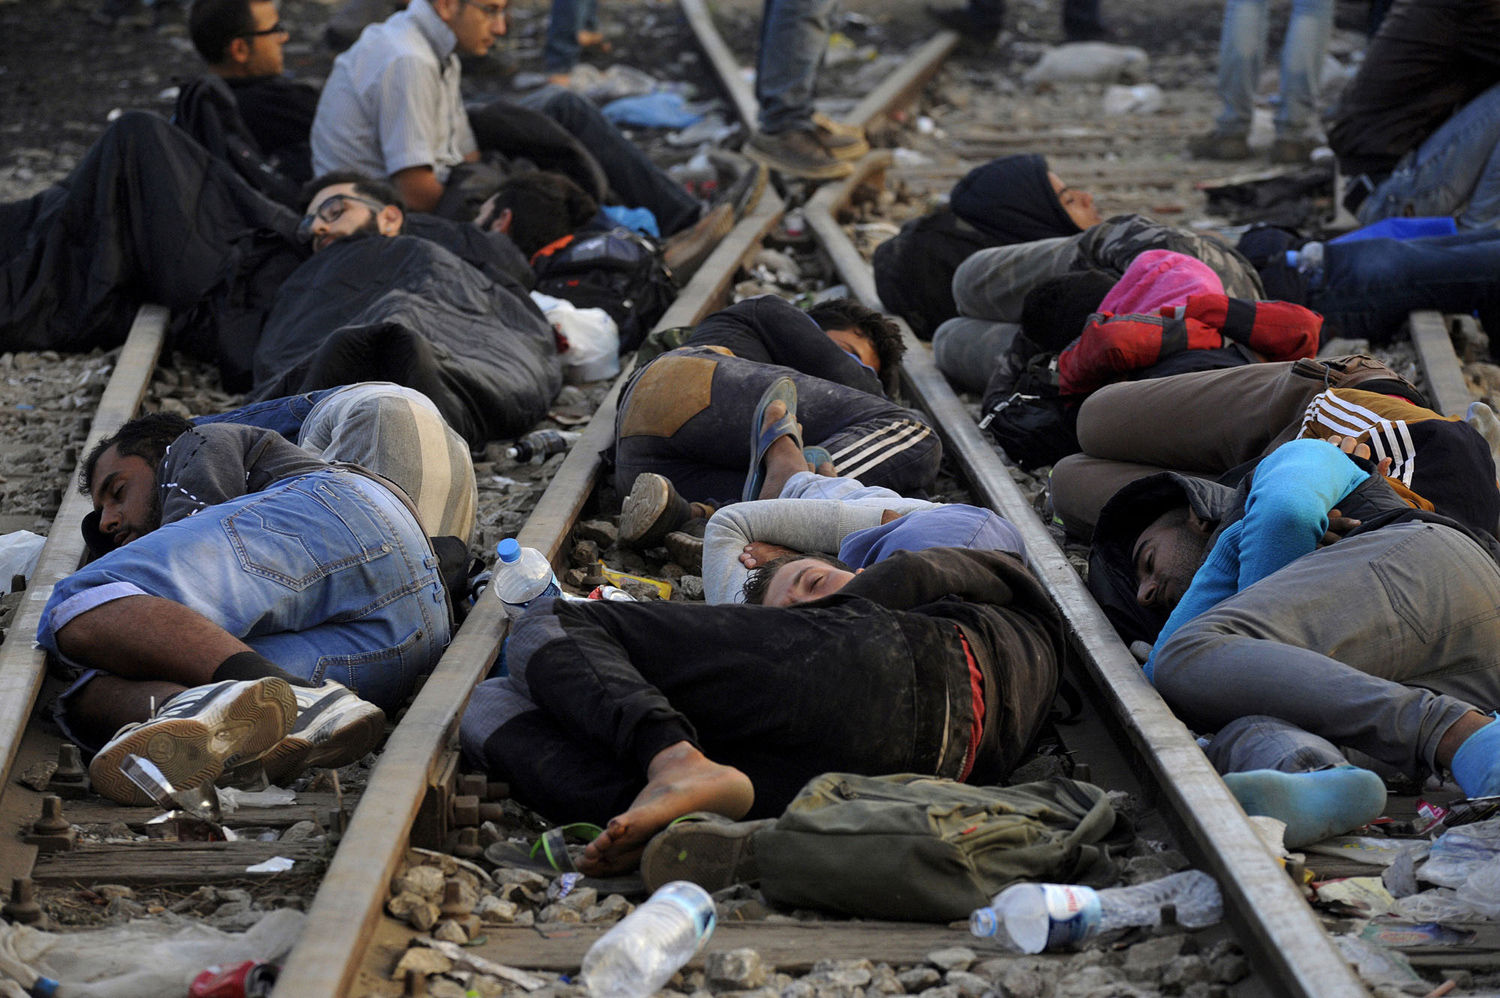 The path of migrants in Europe 06